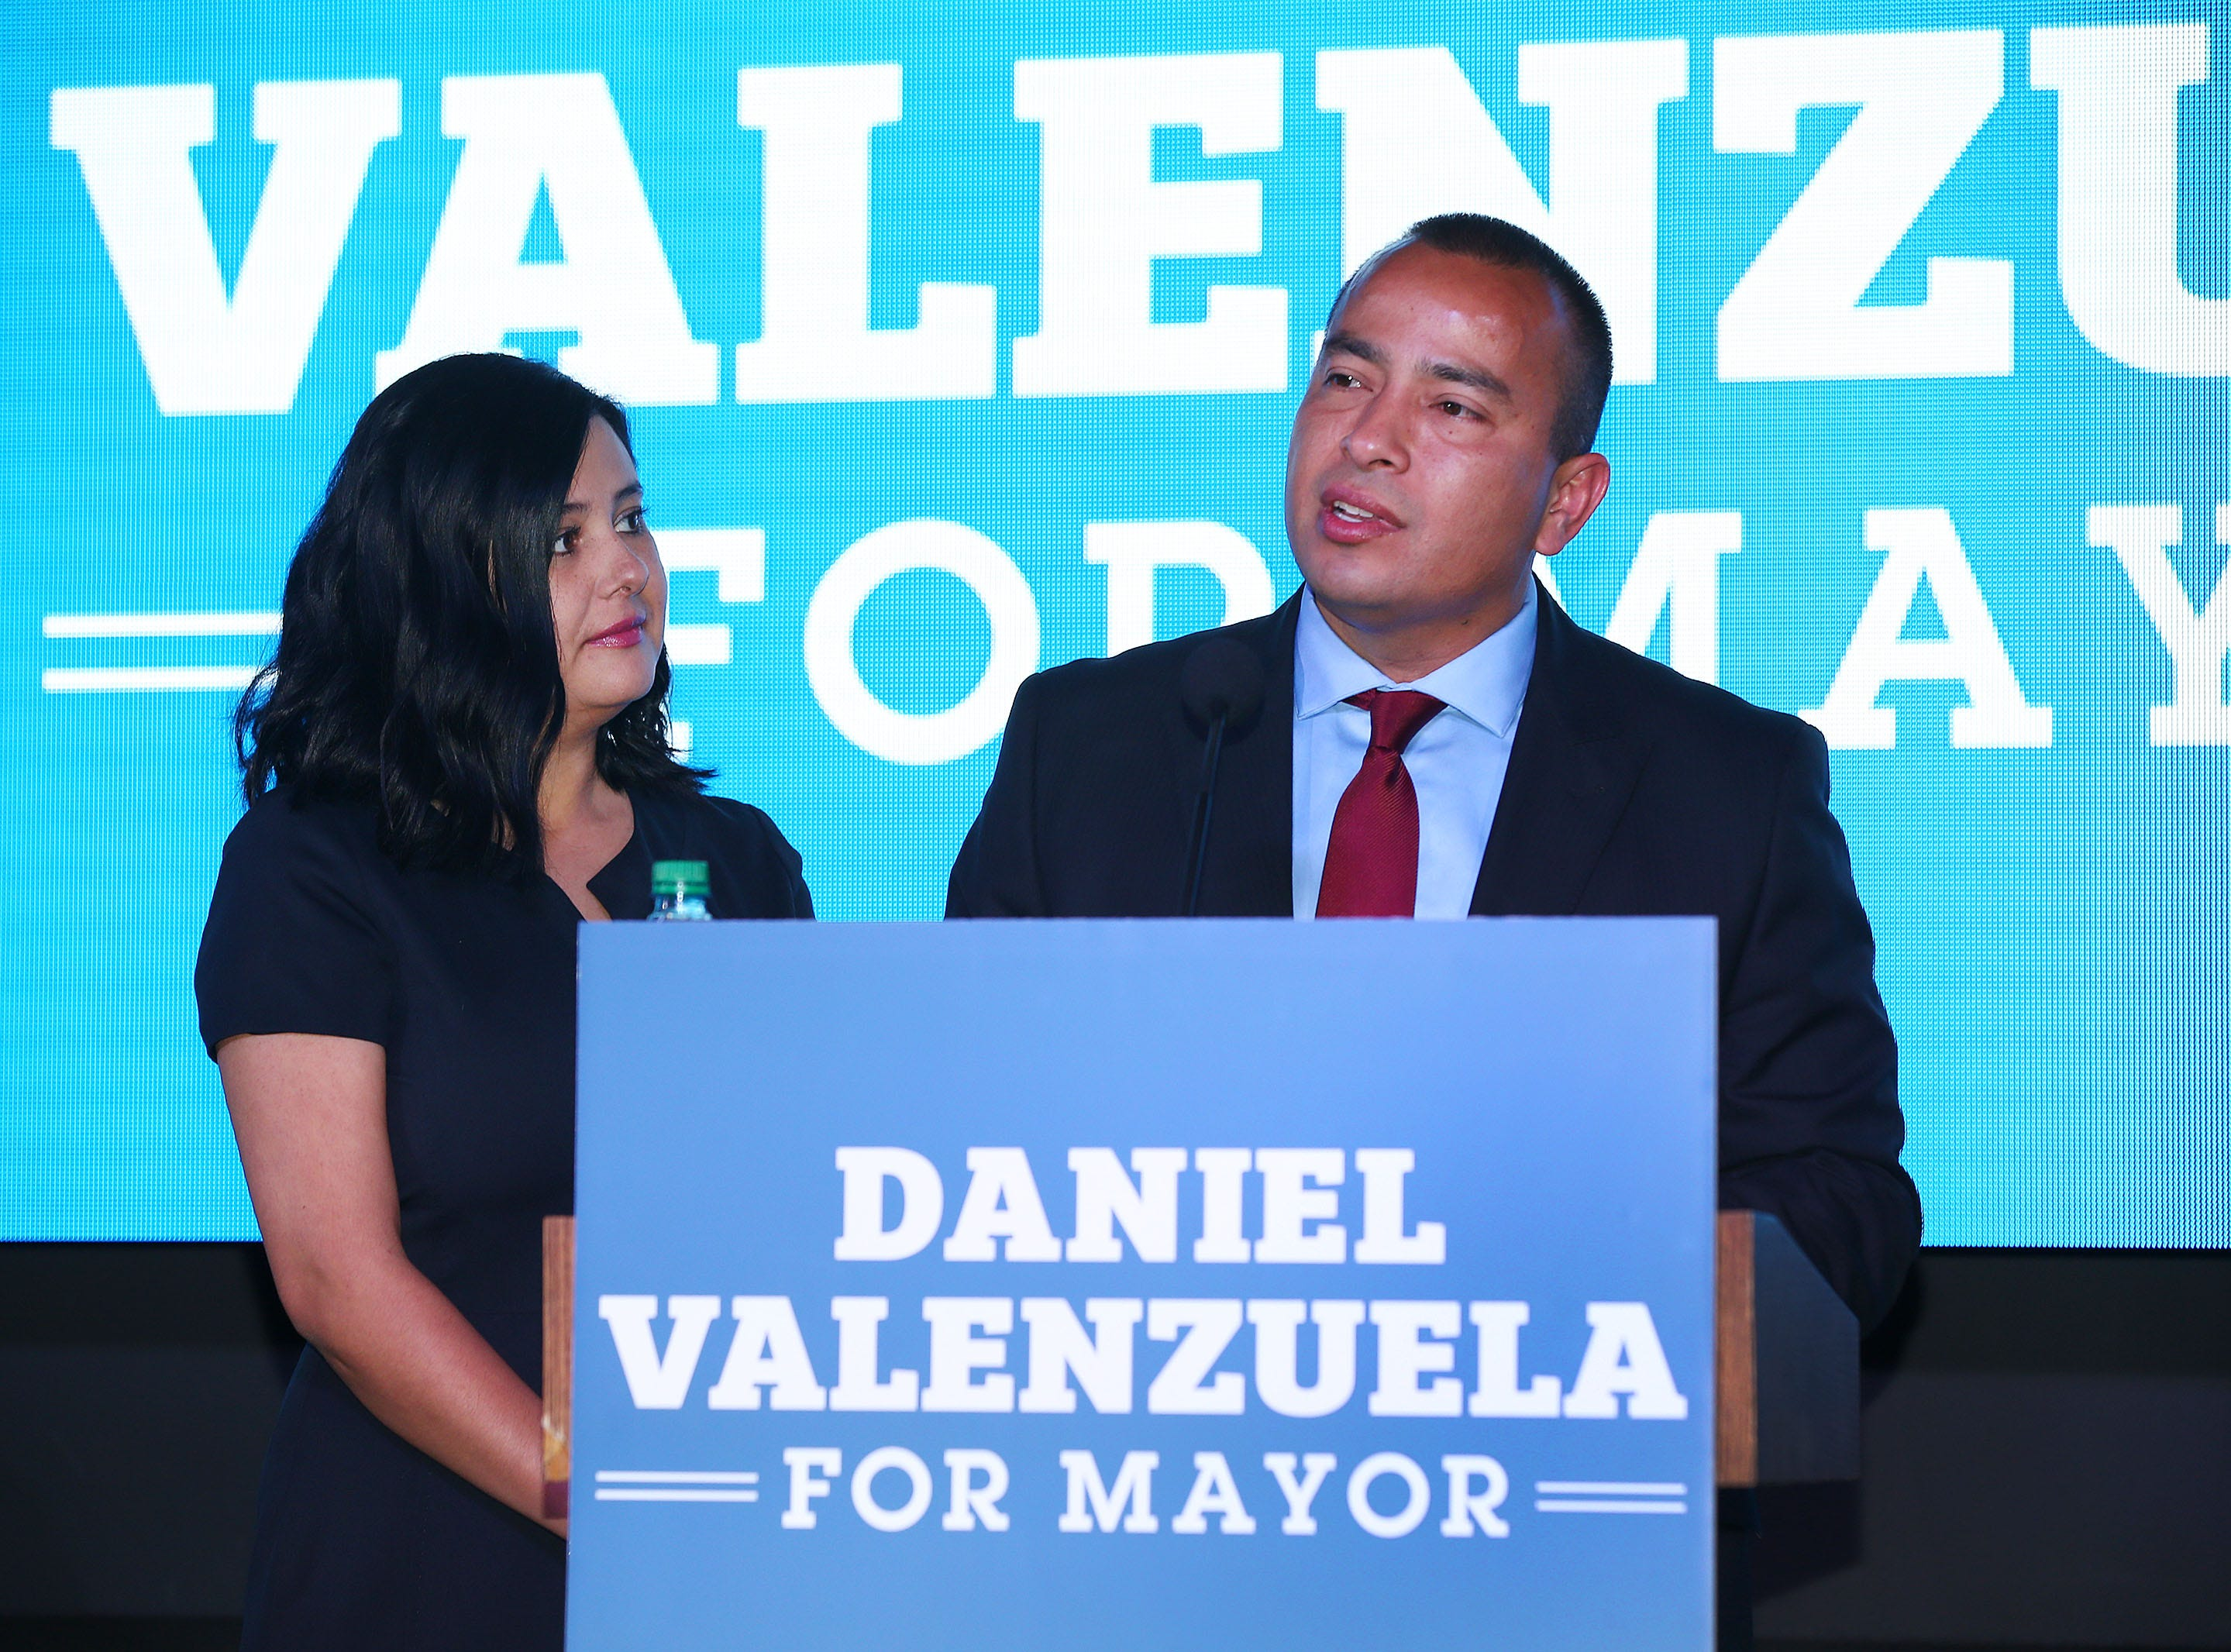 Daniel Valenzuela, candidate for Phoenix Mayor makes his concession speech with his wife Wendy at his side on March 12, 2019 in Phoenix.